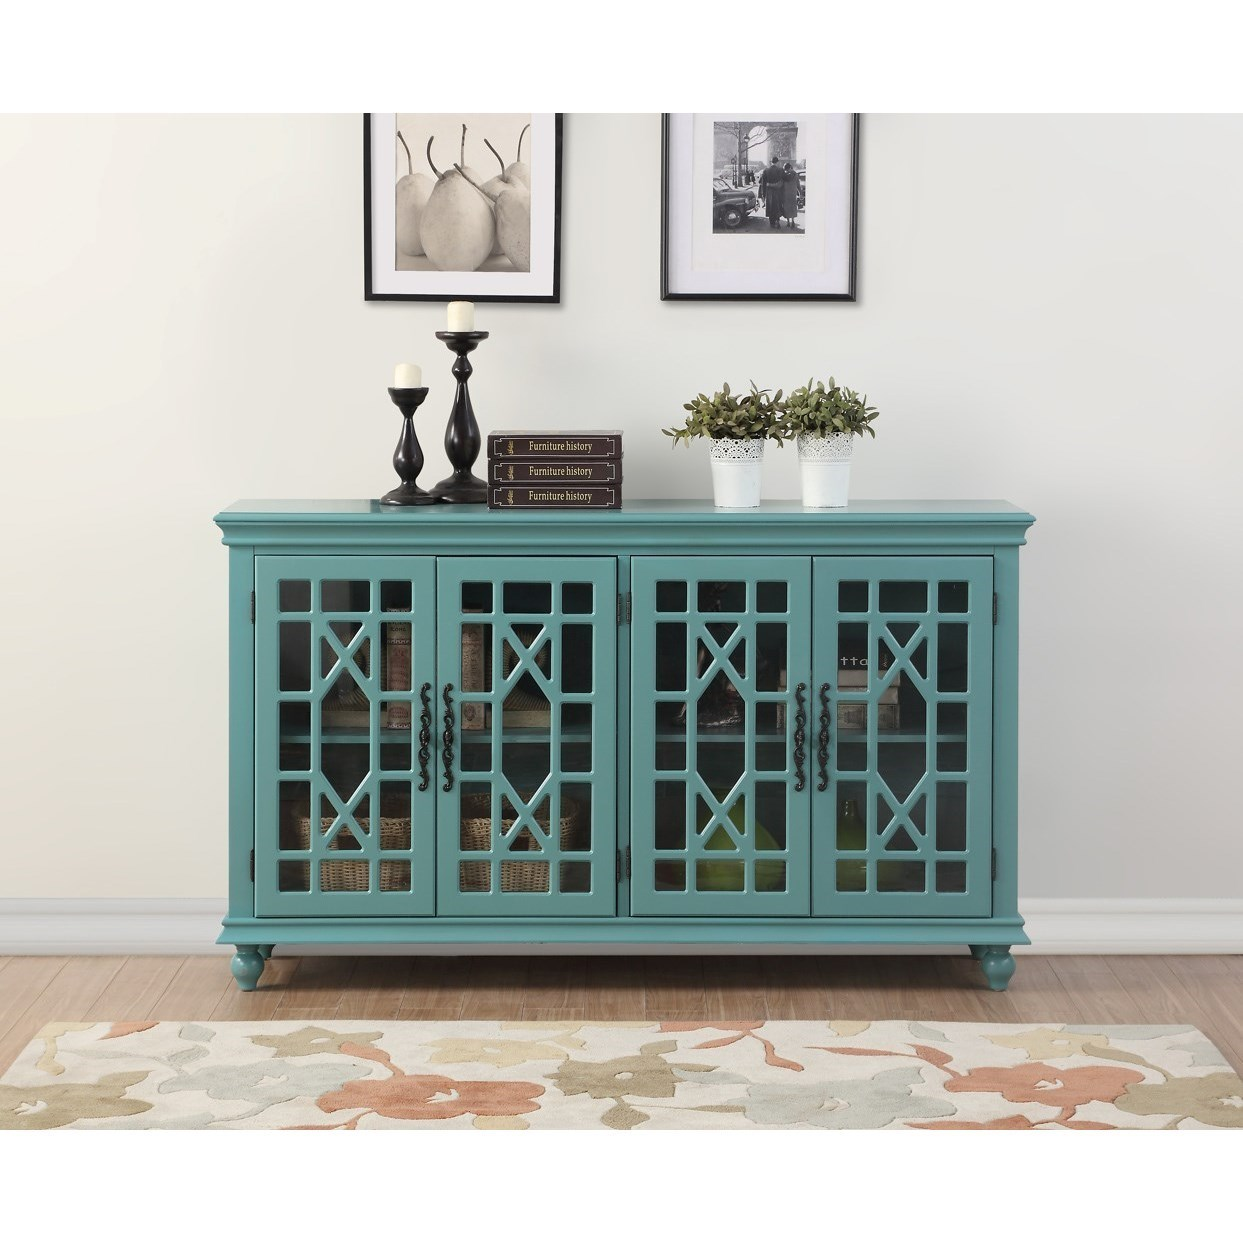 Legends Furniture AnthologyMeghan Blue 4-Door Chest & Legends Furniture Anthology ZACC-9122 Meghan Blue 4-Door Chest | Del ...